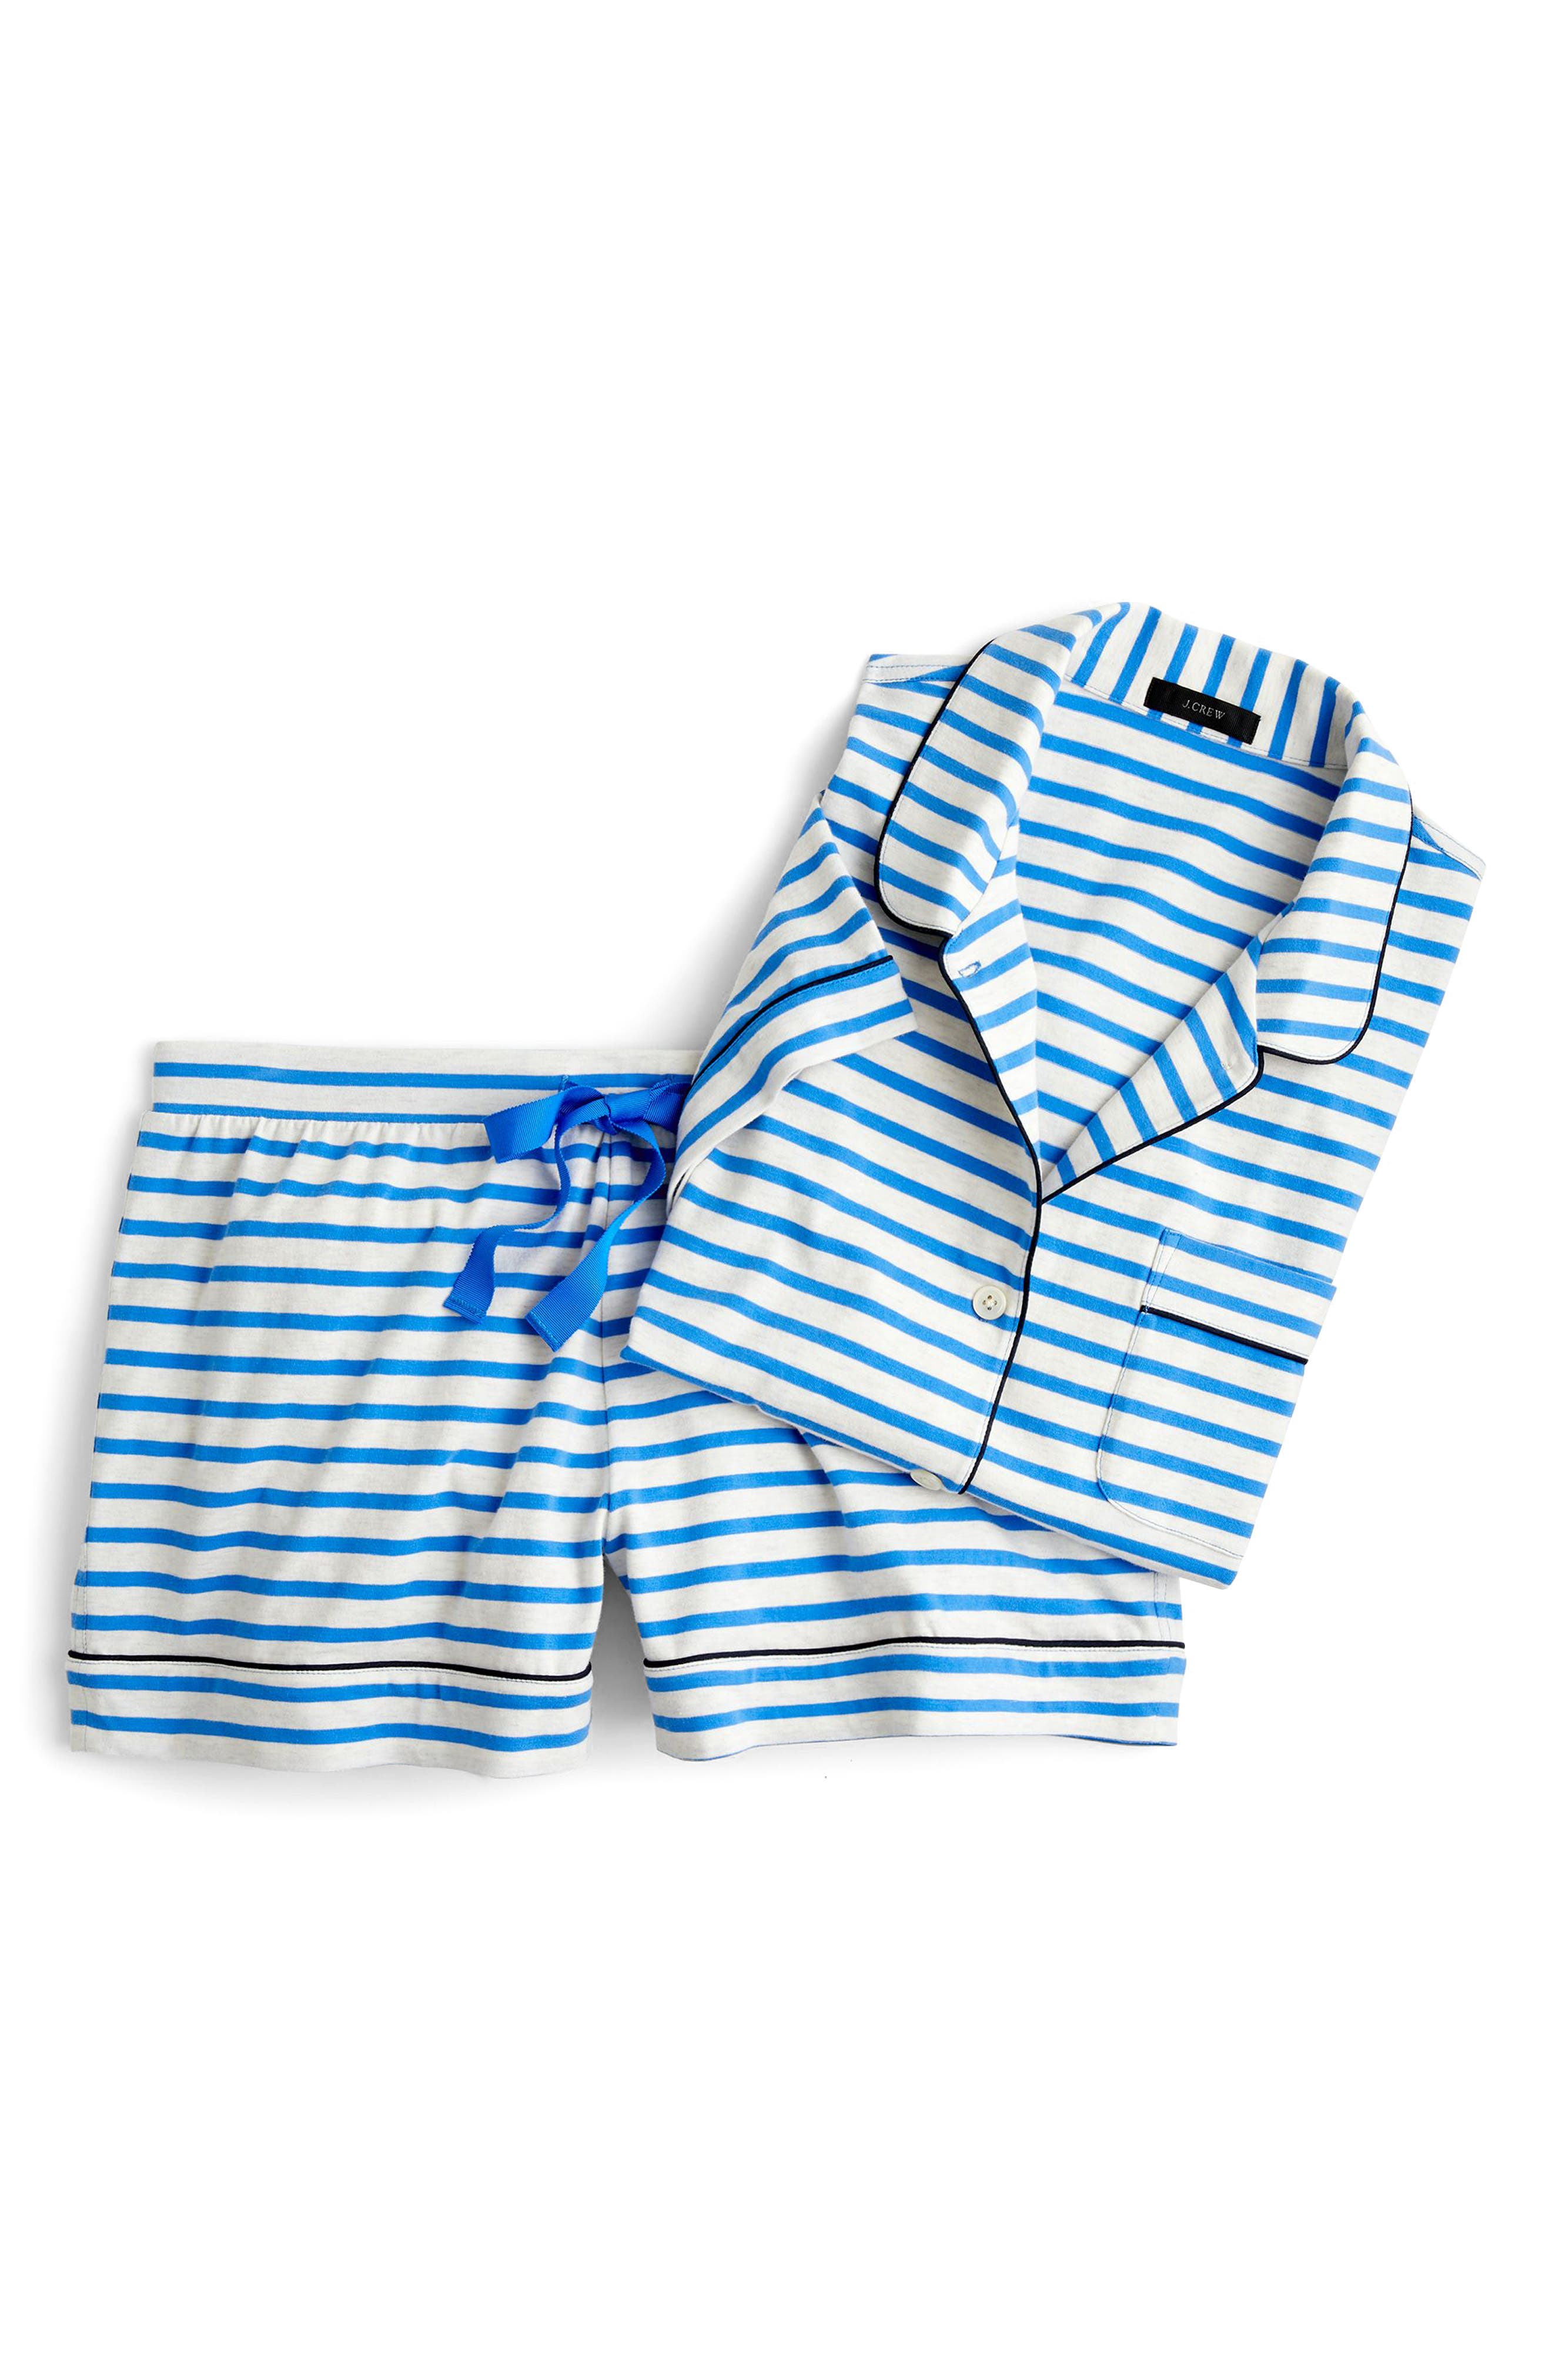 Dreamy Striped Short Pajamas,                             Main thumbnail 1, color,                             HEATHER BLUE